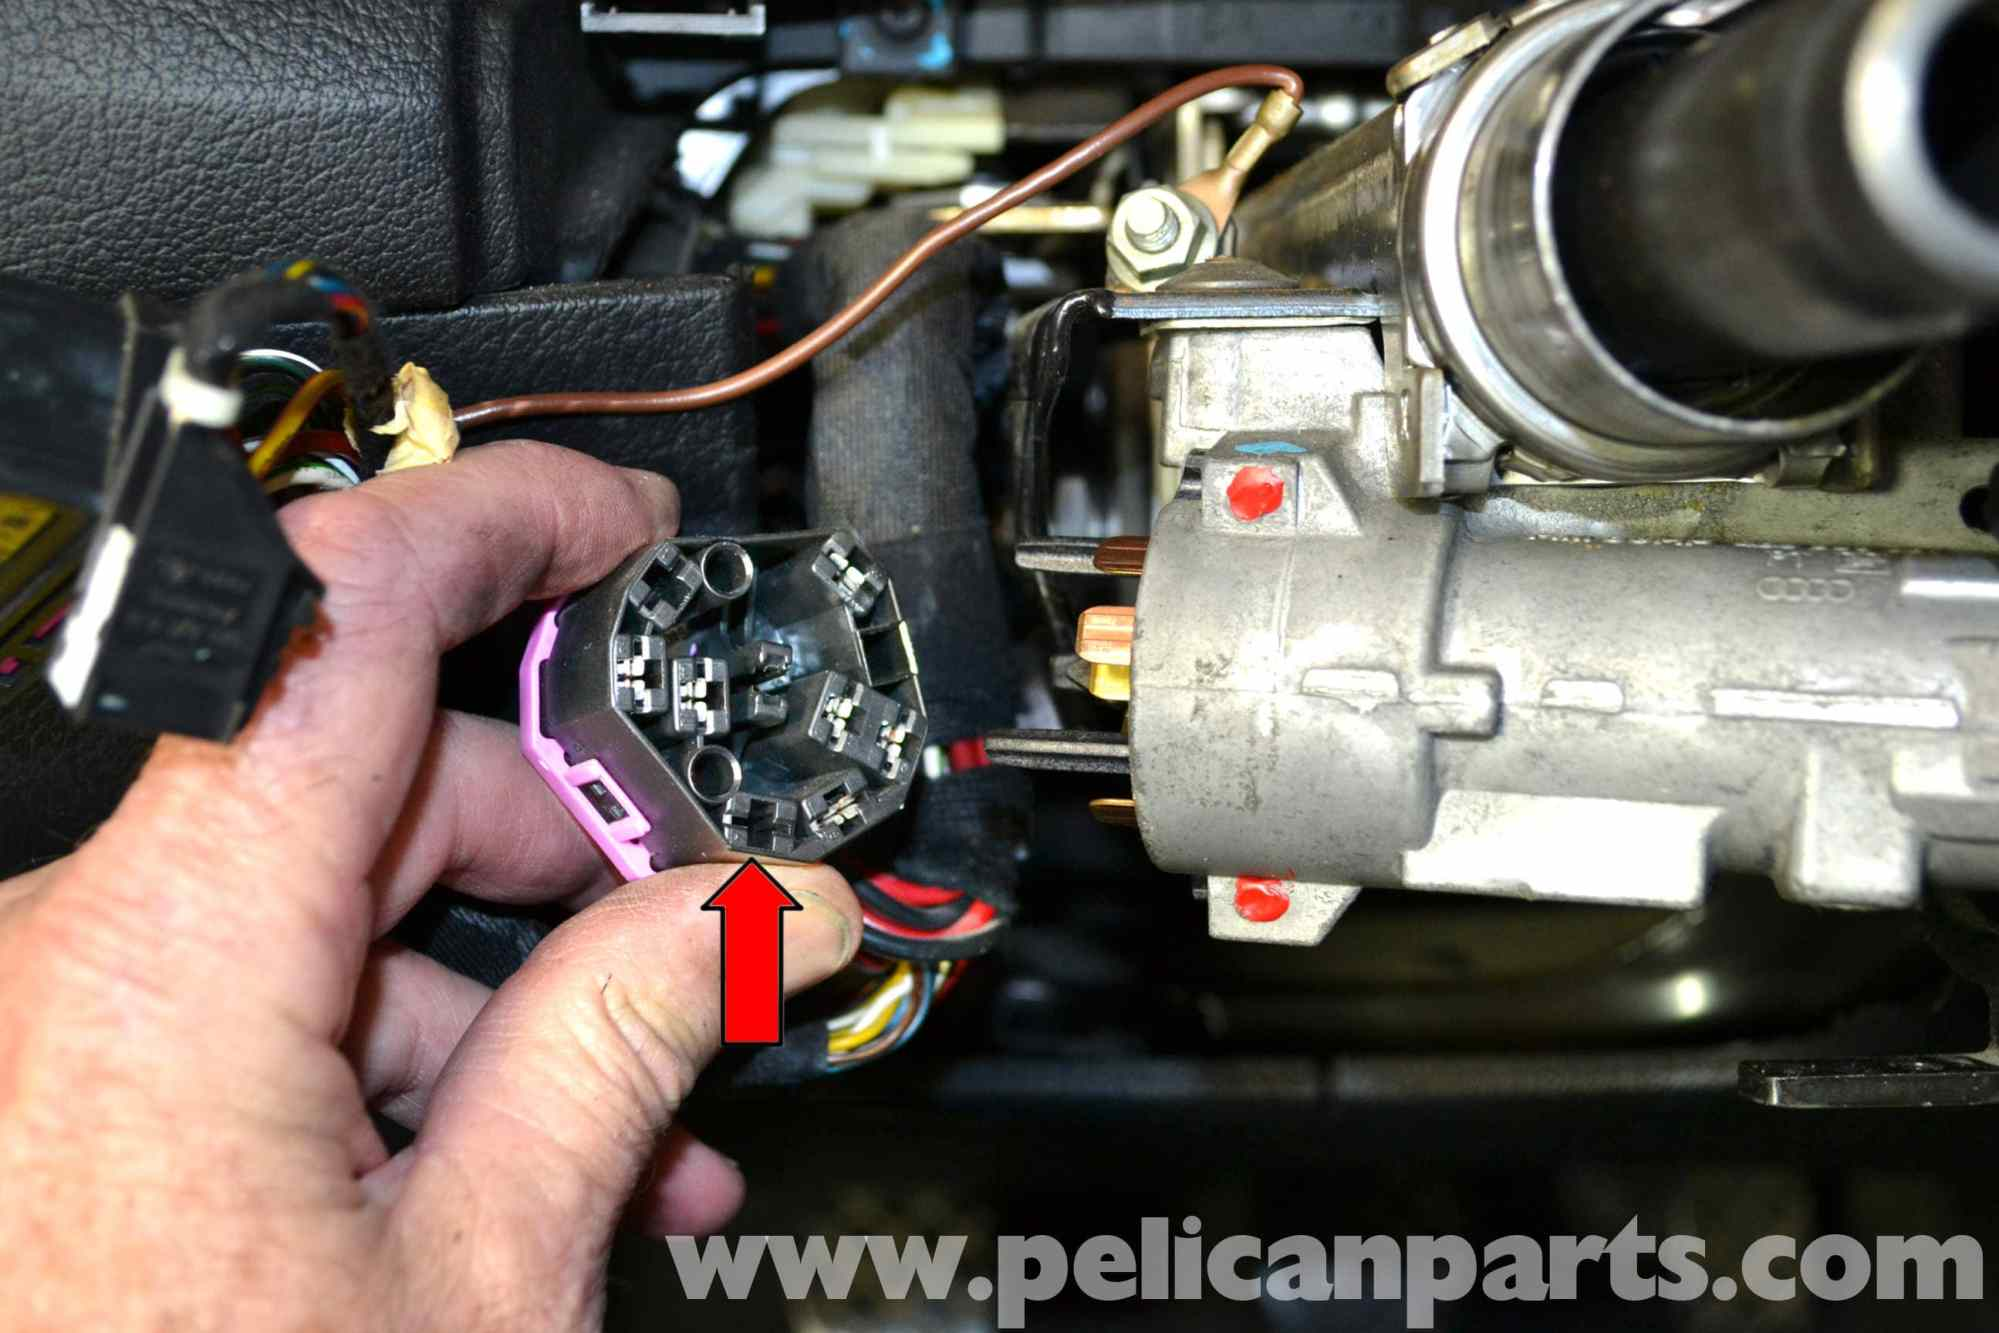 hight resolution of vw gti v6 ignition wiring manual e book diagram of vw golf v ignition manual e